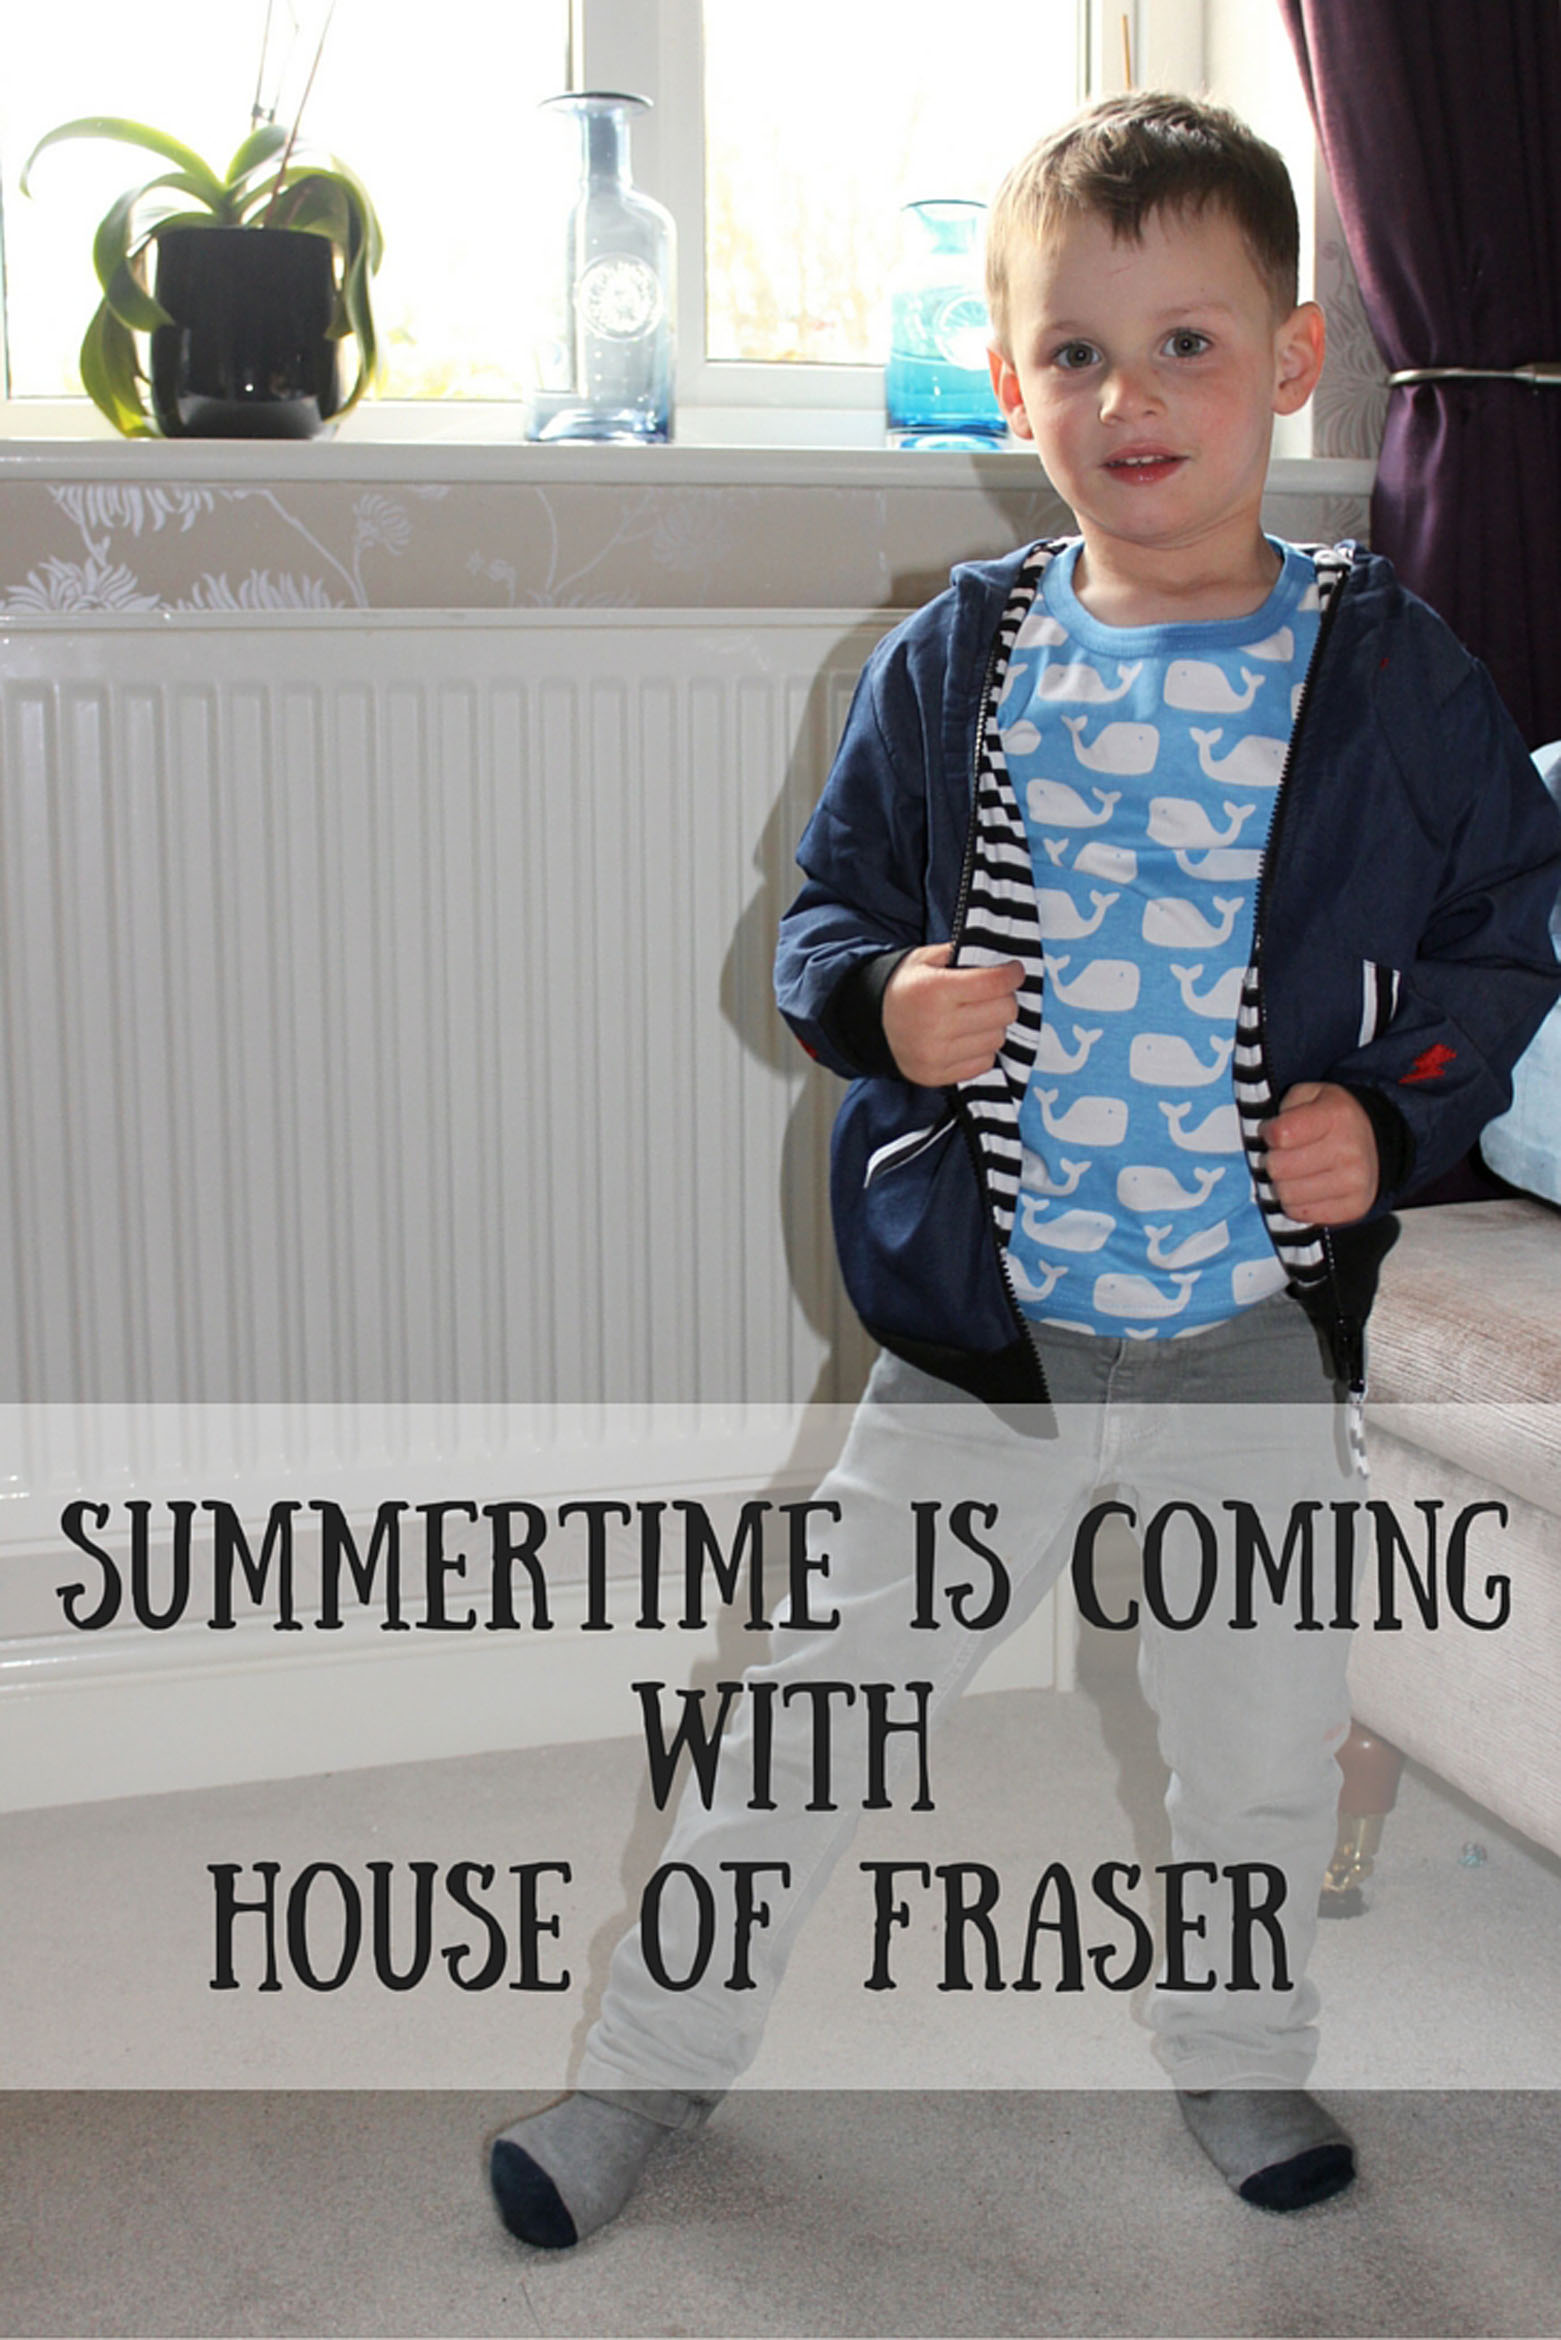 Summertime is ComingwithHouse of Fraser